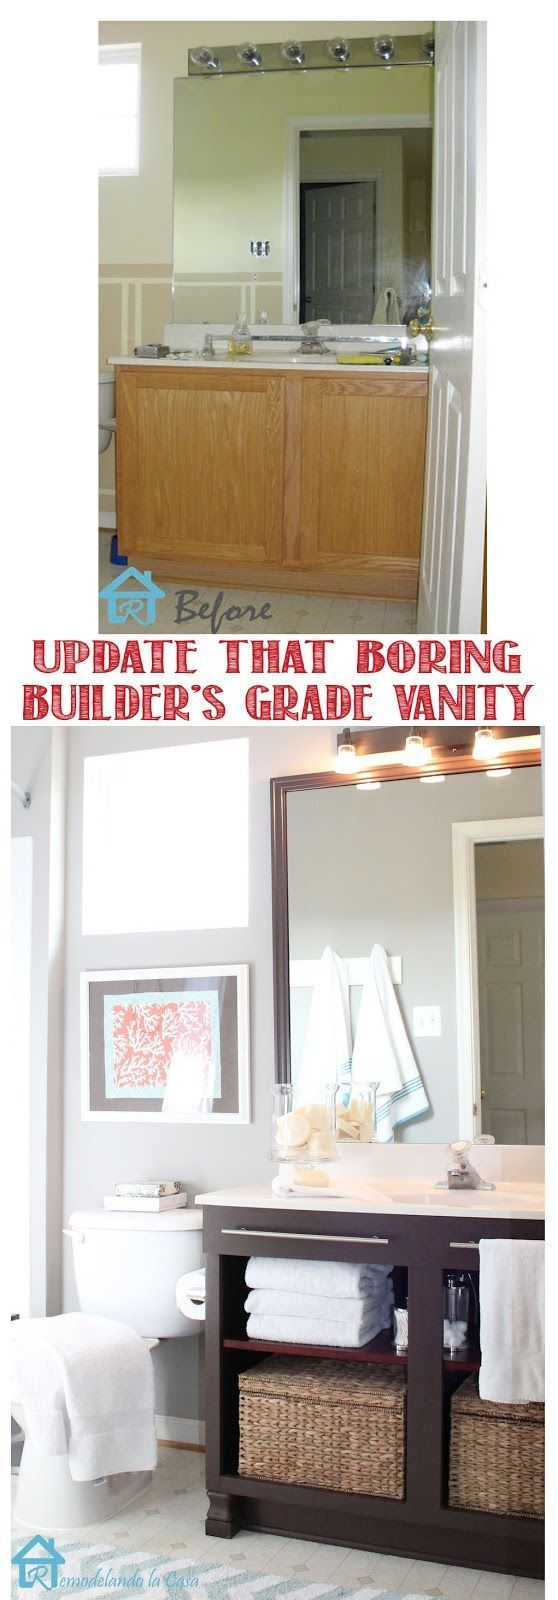 Get rid of the doors, install a shelf and towel rods to get a new looking vanity.